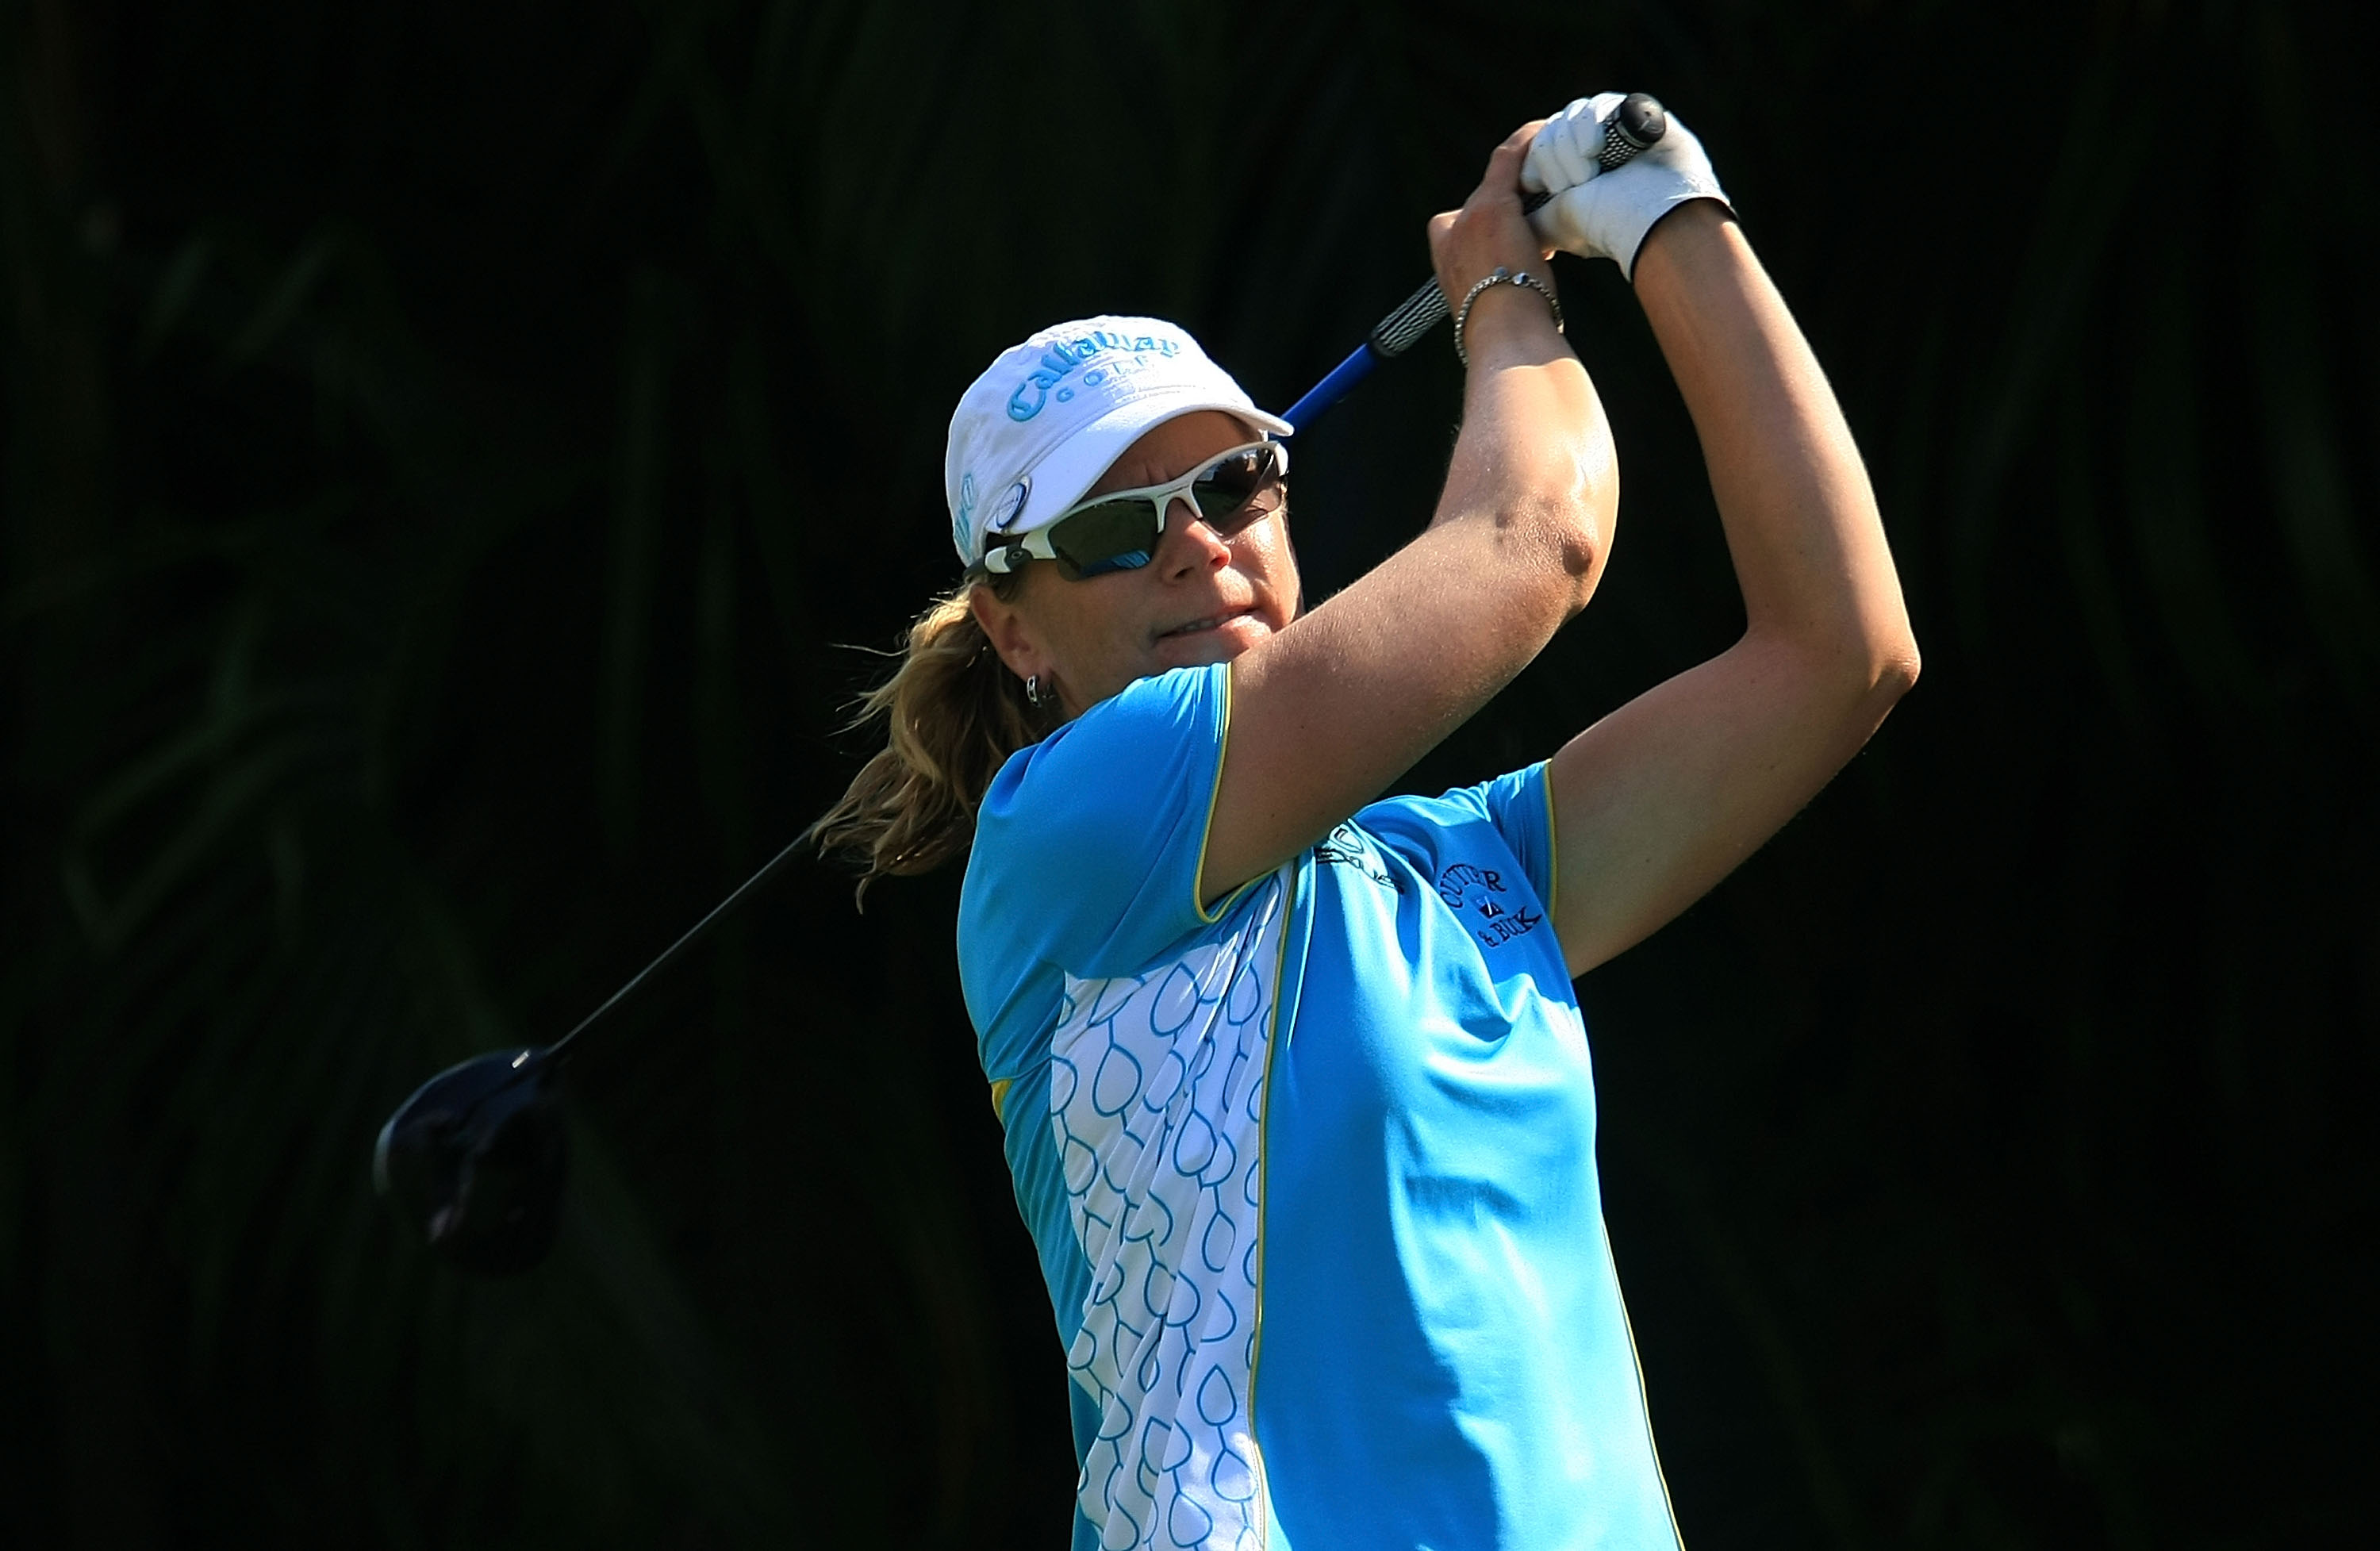 WEST PALM BEACH, FL - NOVEMBER 21:  Annika Sorenstam of Sweden hits her tee shot on the ninth hole during the second round of the ADT Championship at the Trump International Golf Club on November 21, 2008 in West Palm Beach, Florida.  (Photo by Scott Hall